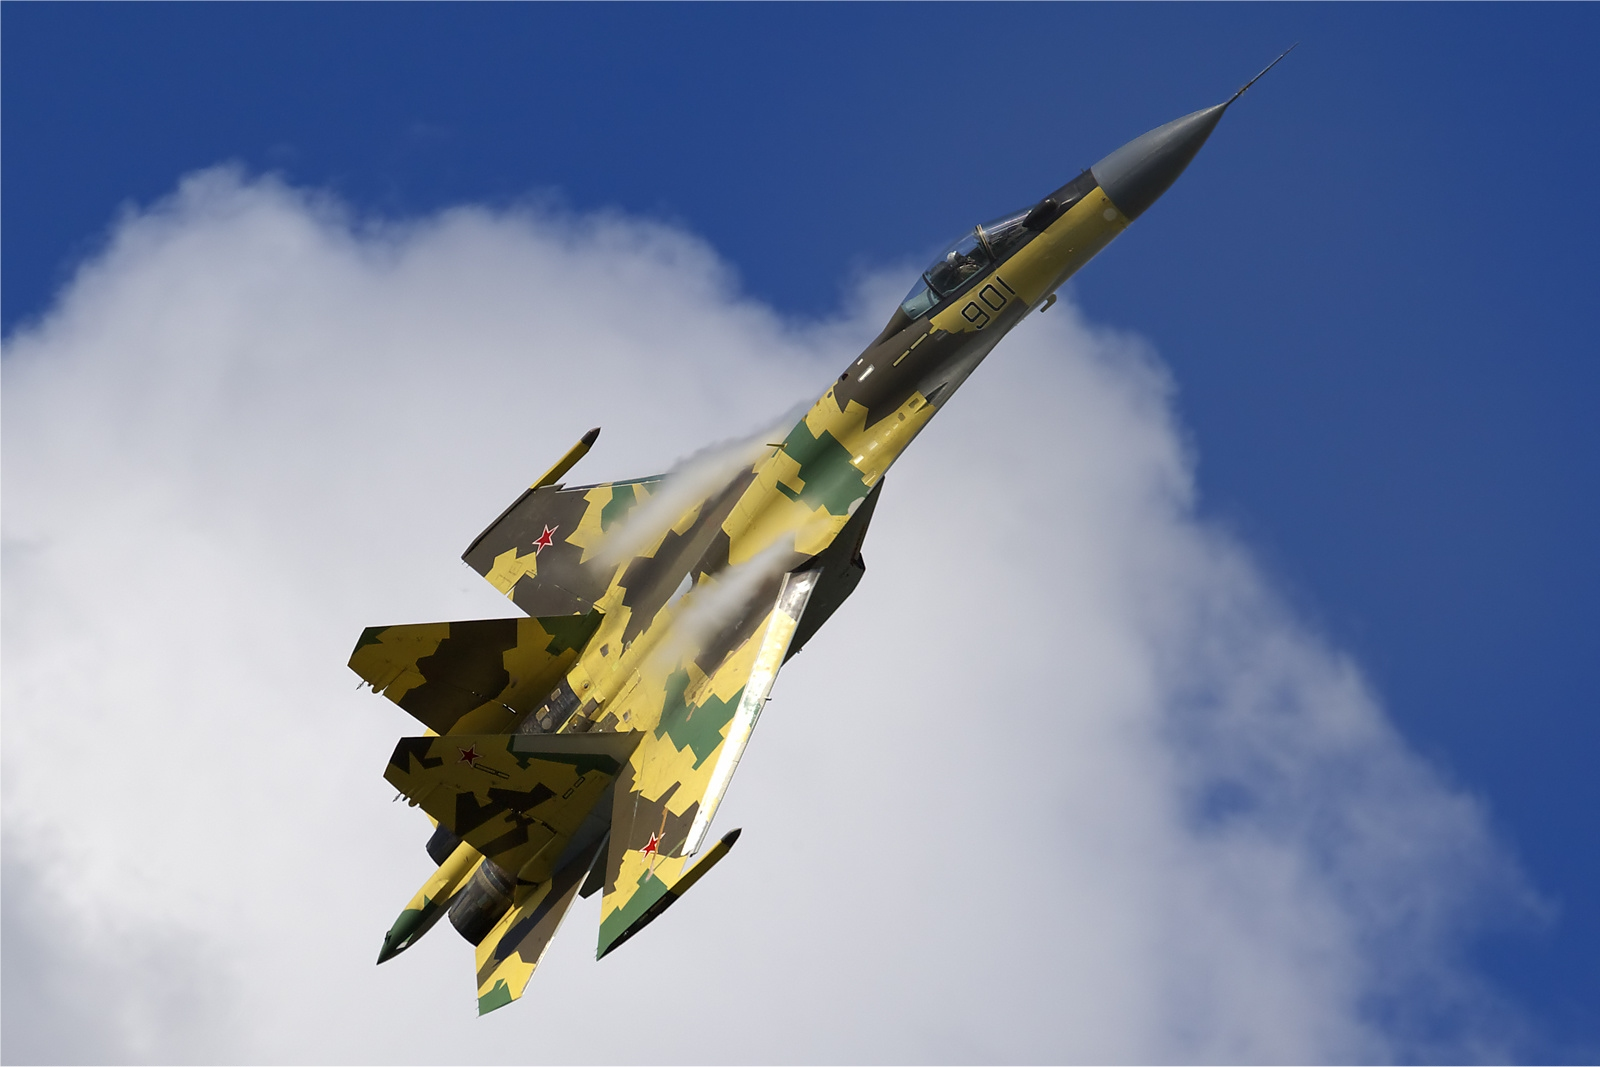 File:Russian Air Force Sukhoi Su-35 Belyakov.jpg - Wikimedia Commons